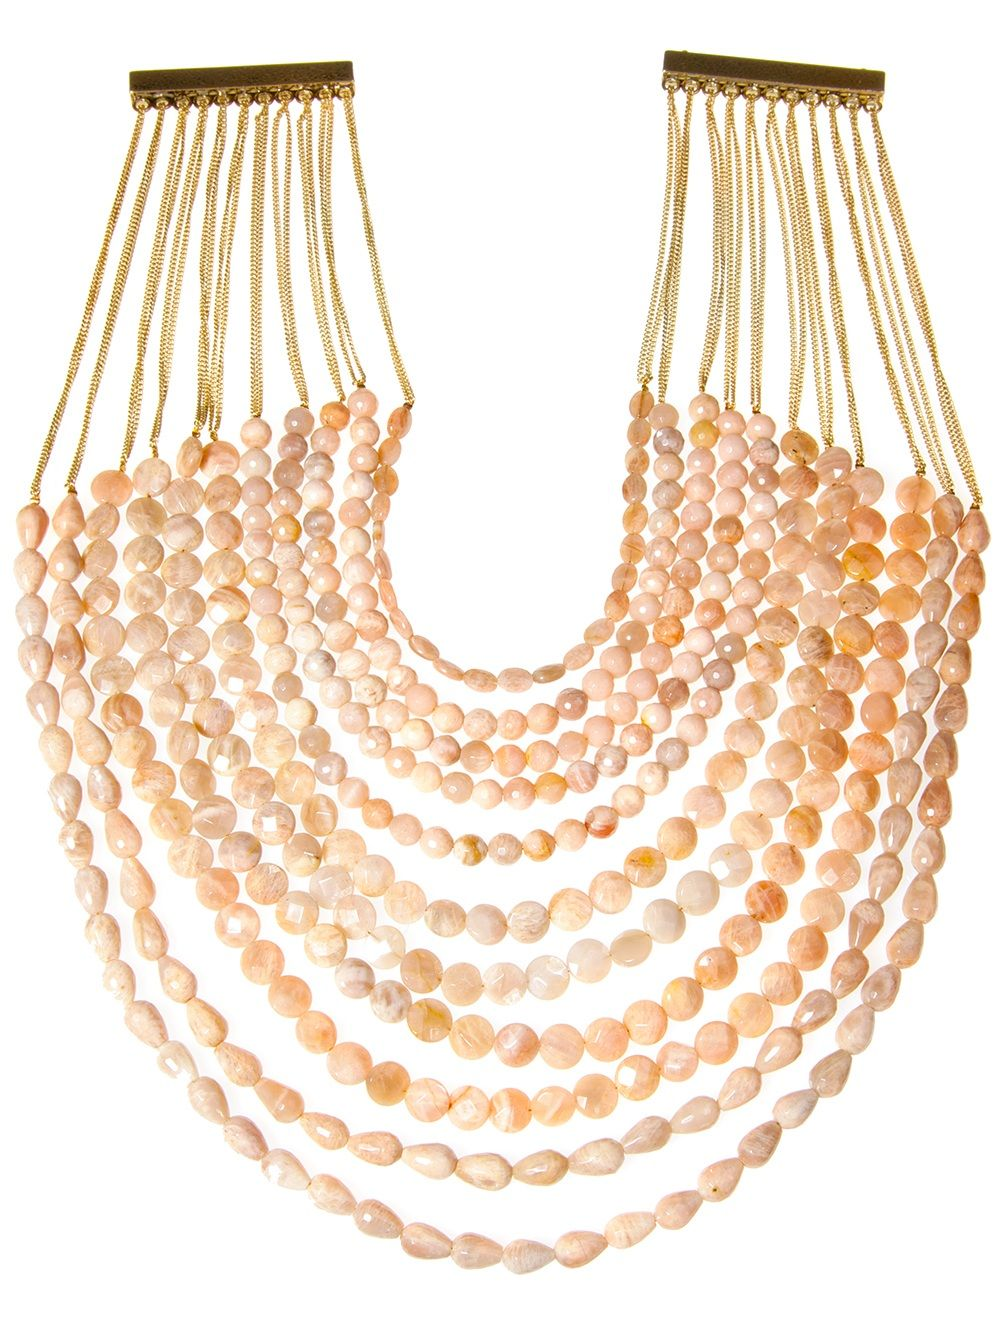 Rosantica Chain And Bead Necklace